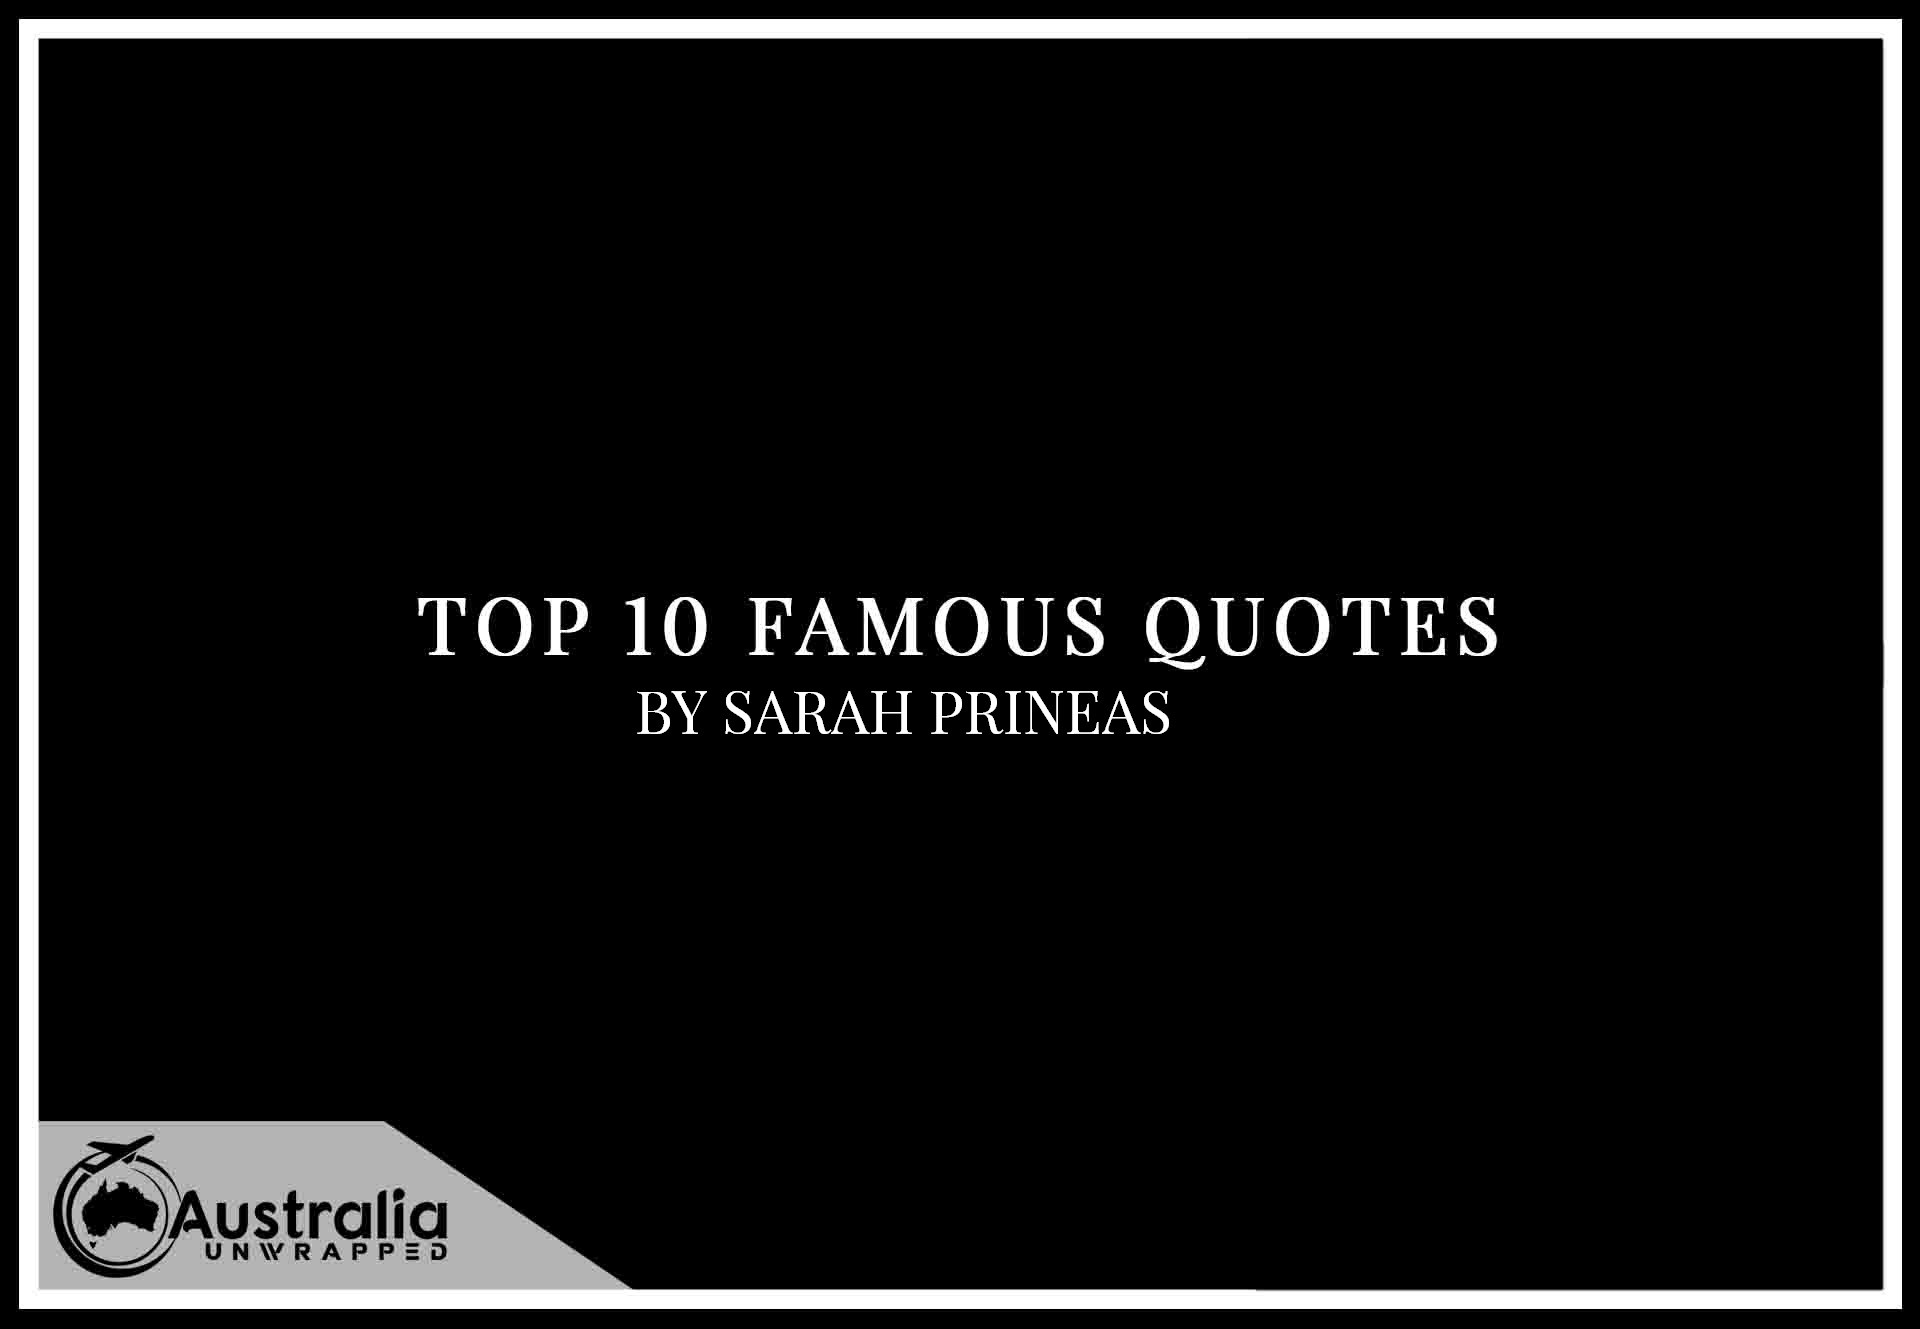 Top 10 Famous Quotes by Author Sarah Prineas